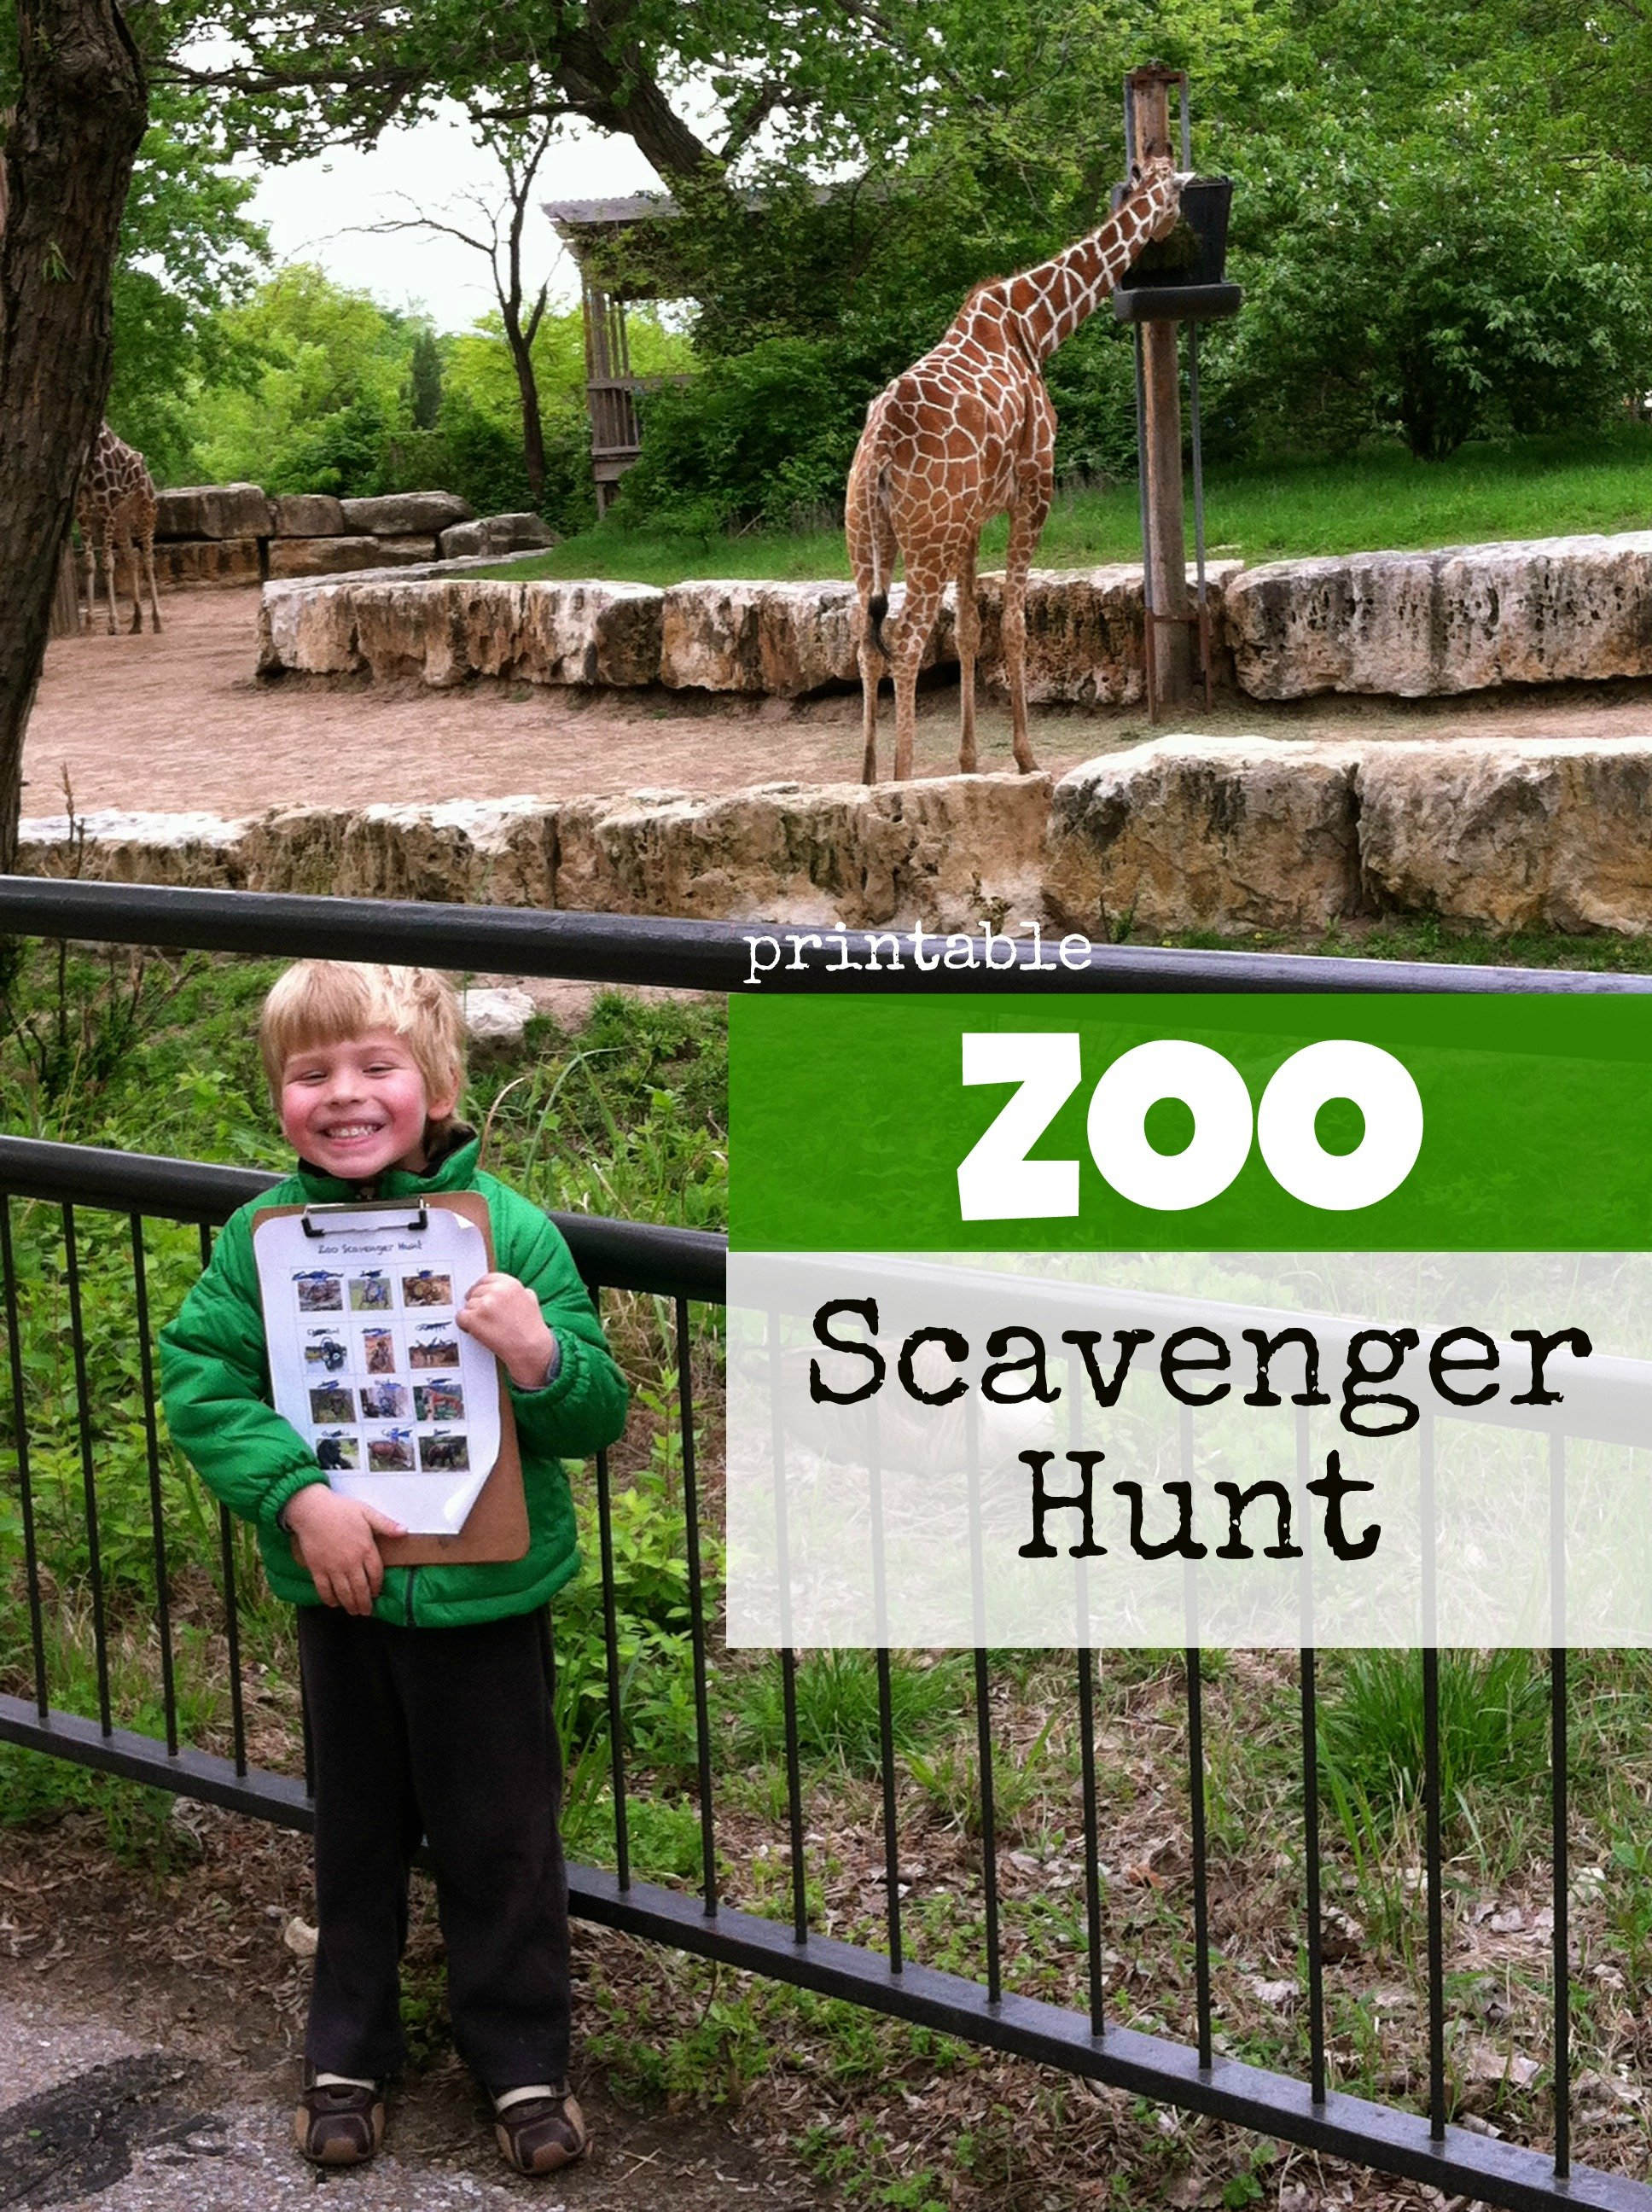 a visit to zoo essay A visit to a zoo is one of the most enthralling and exciting things it is an interesting way to let the children see animals, which they cannot see otherwise a visit to a zoo is an entertaining activity not just for children but also for adults as it increases their knowledge and makes them wonder at the marvellous of nature.